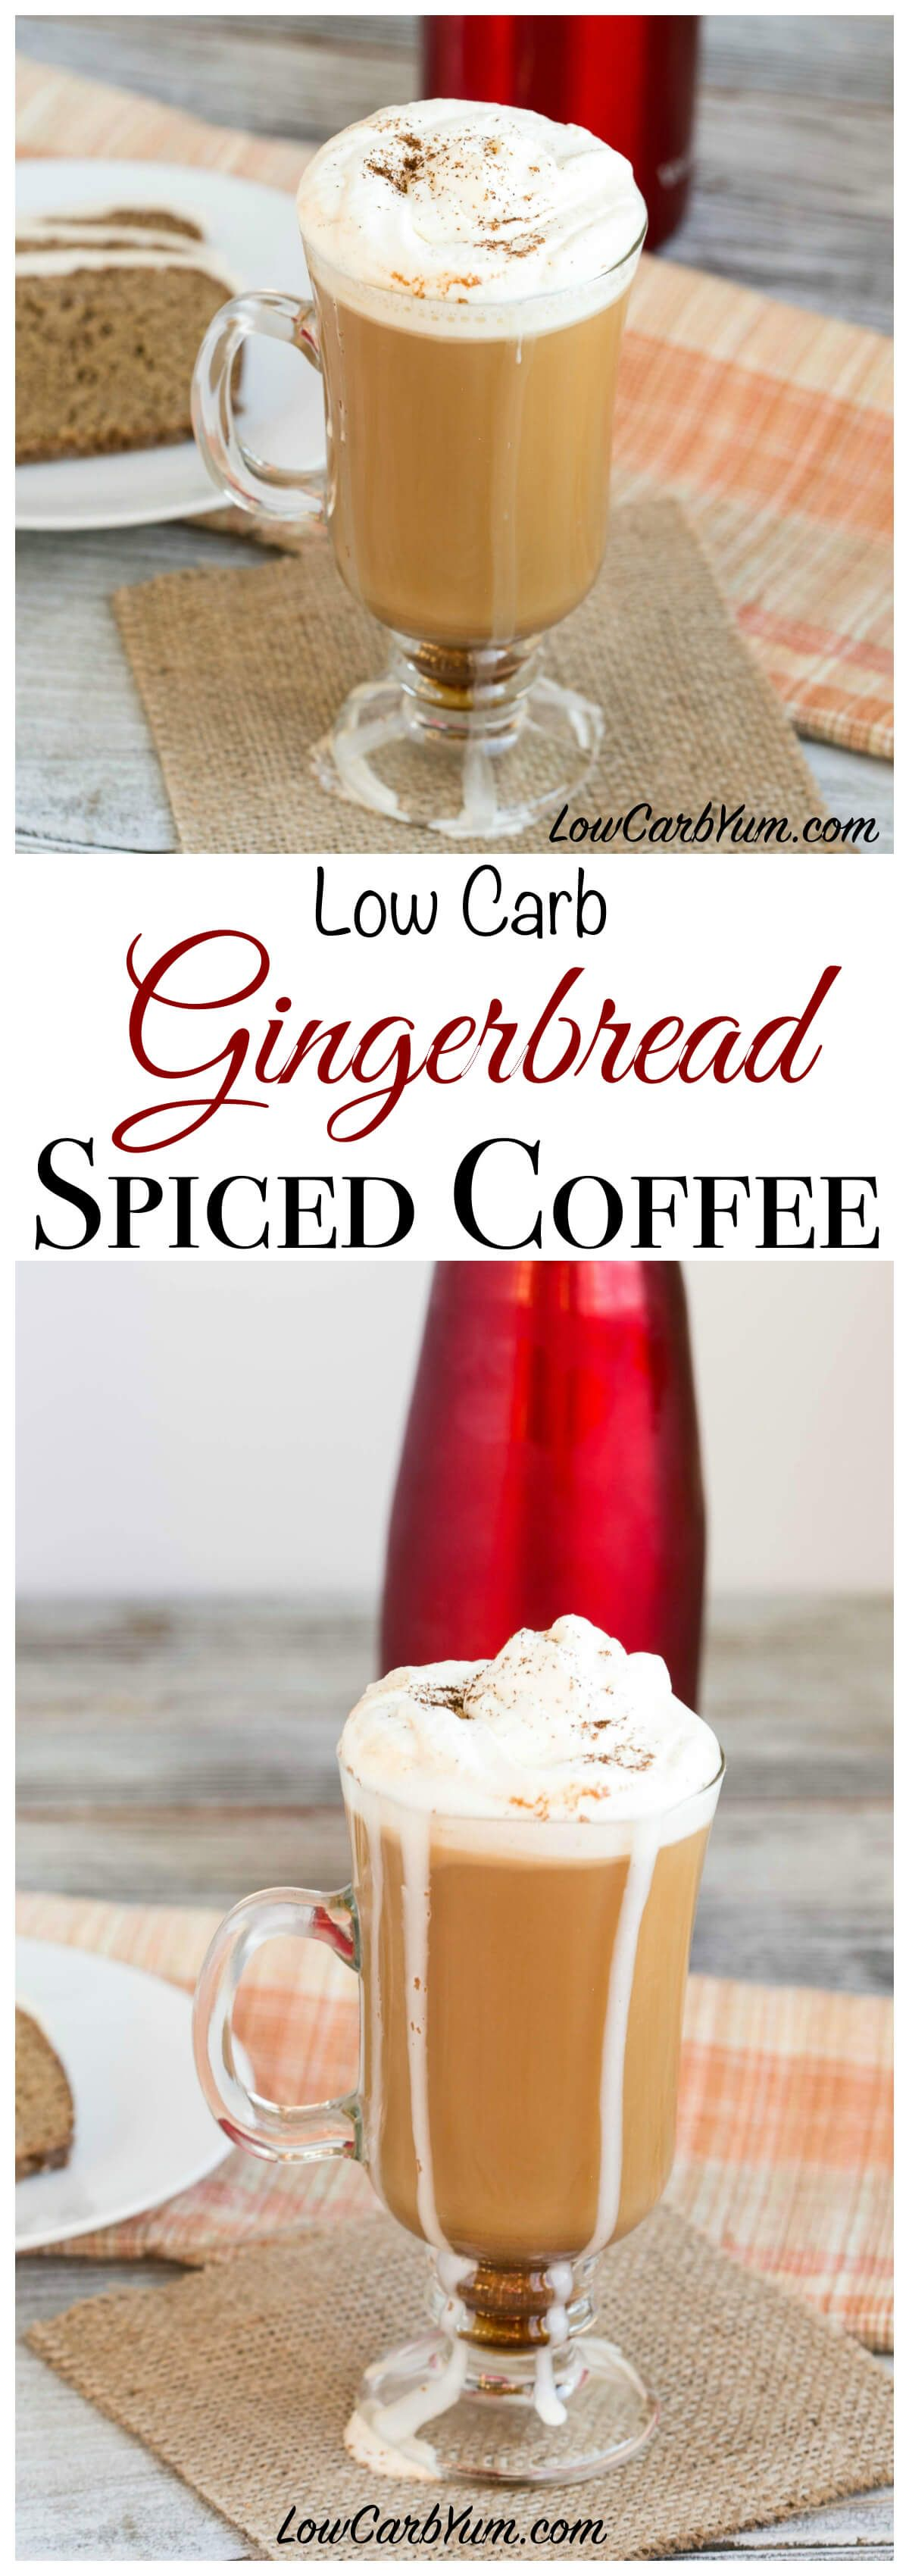 A Low Carb Gingerbread Spice Coffee Recipe That Is A Perfect Beverage To Enjoy During The